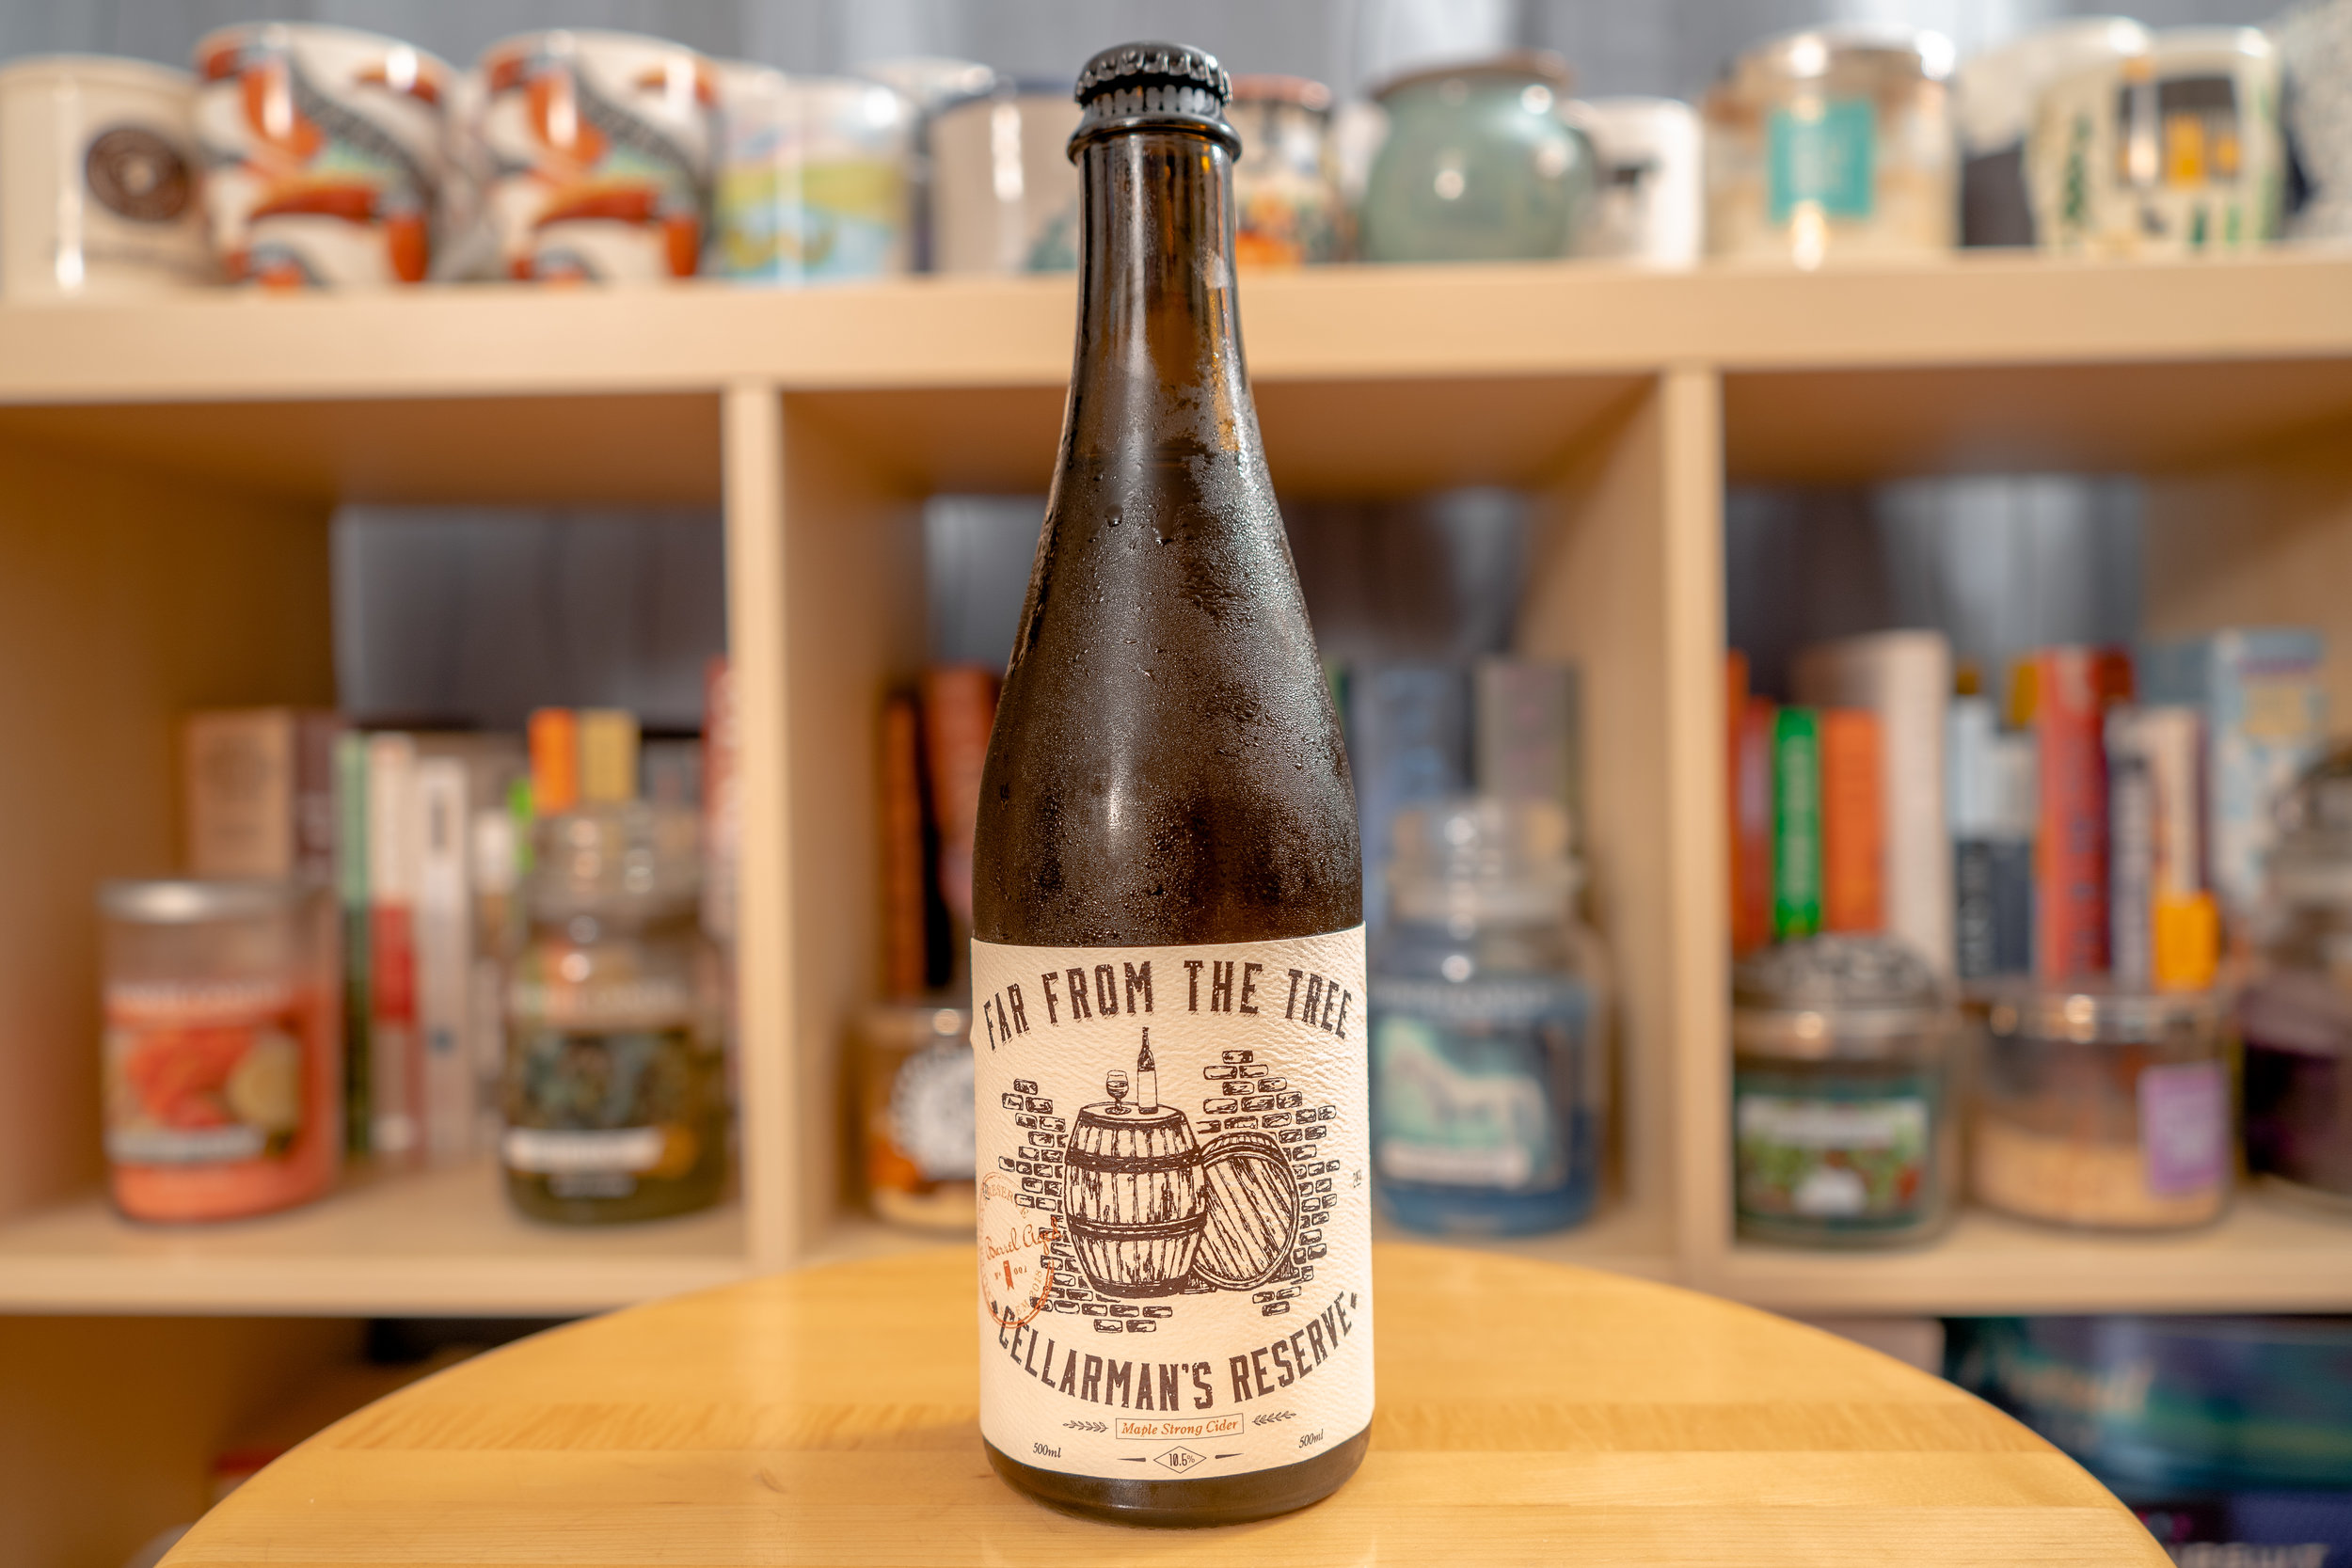 Far from the Tree Cellarman's Reserve Maple Strong Cider